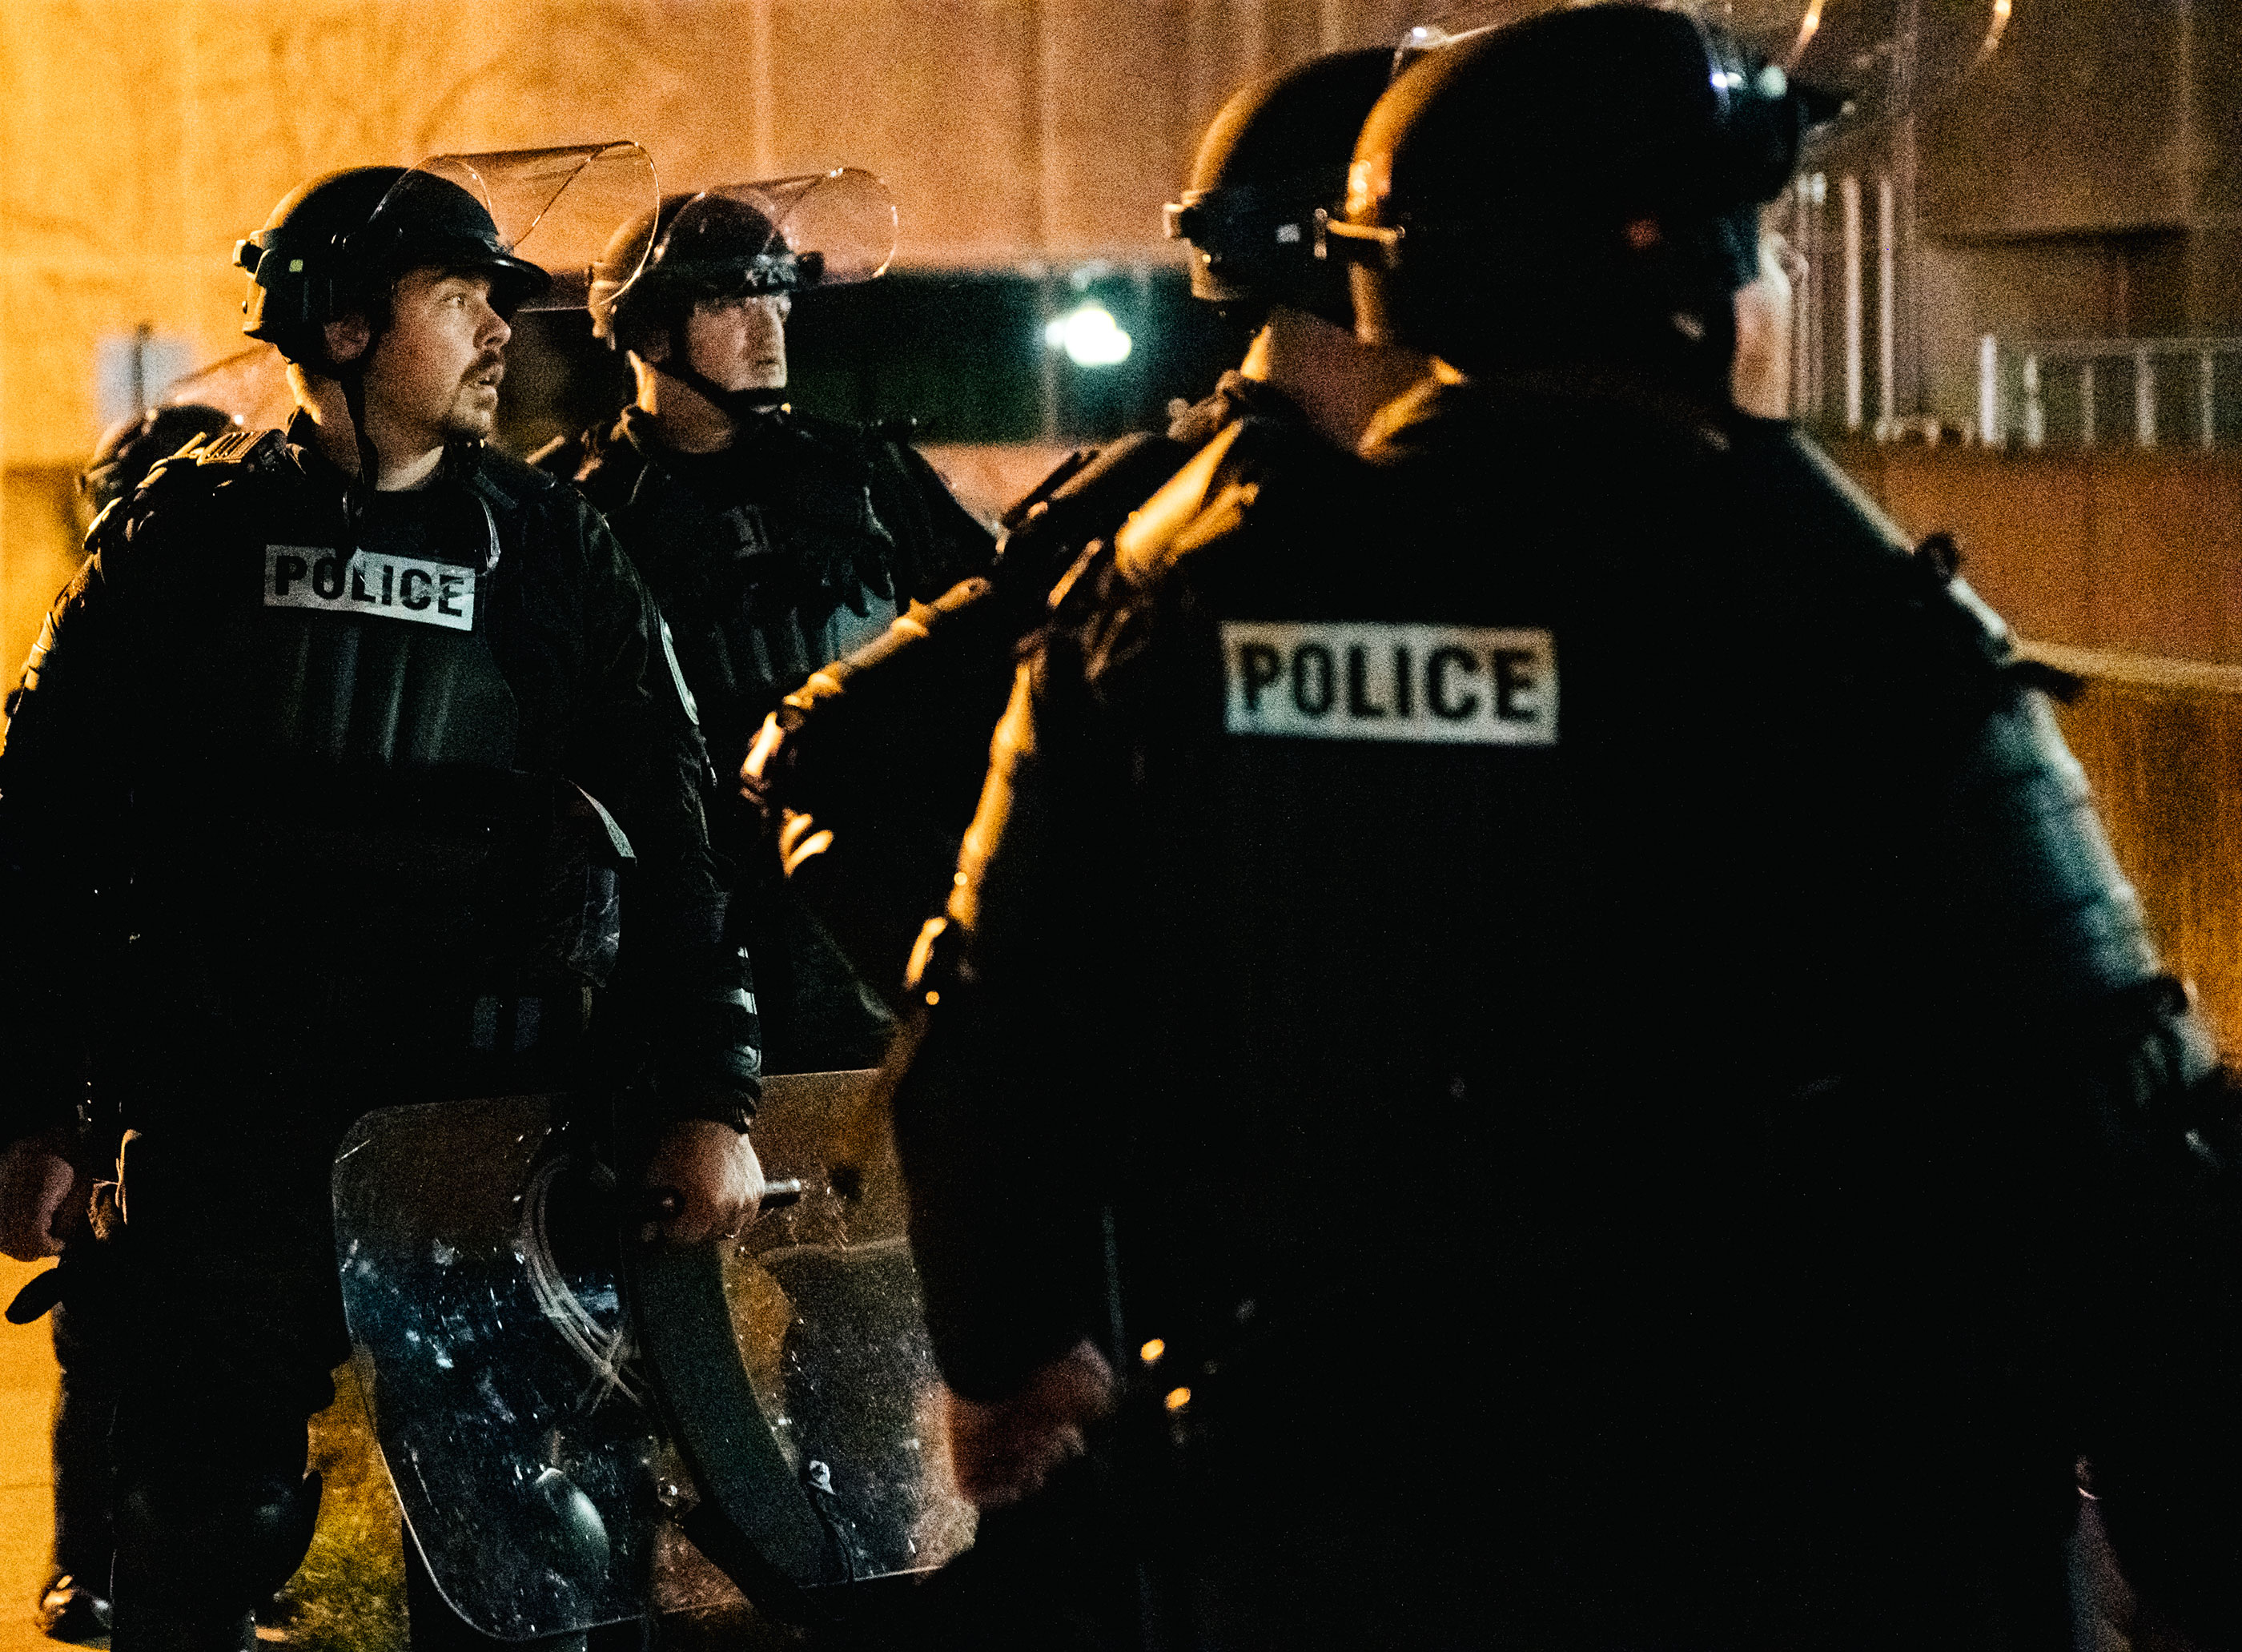 Police officers stand guard near government buildings on August 27 in Kenosha, Wisconsin.